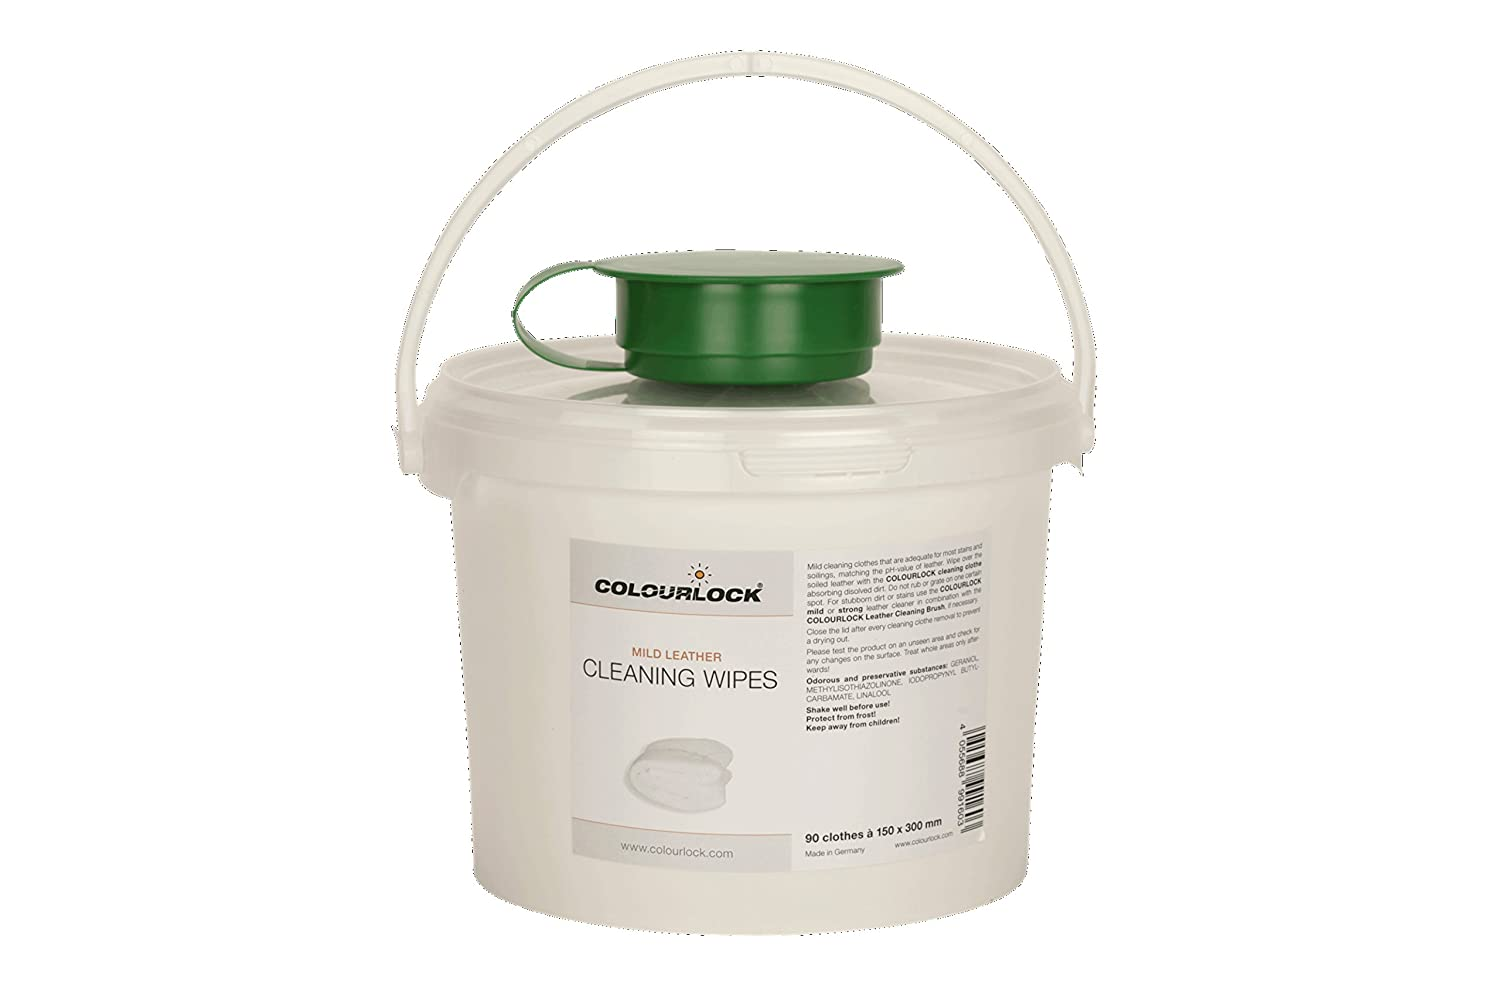 Colourlock Leather Cleaning Wet Wipes for car interiors, Furniture, Sofa, settees, Bags, etc - Pack of 90 Large Wipes Lederzentrum GmbH 4332947096